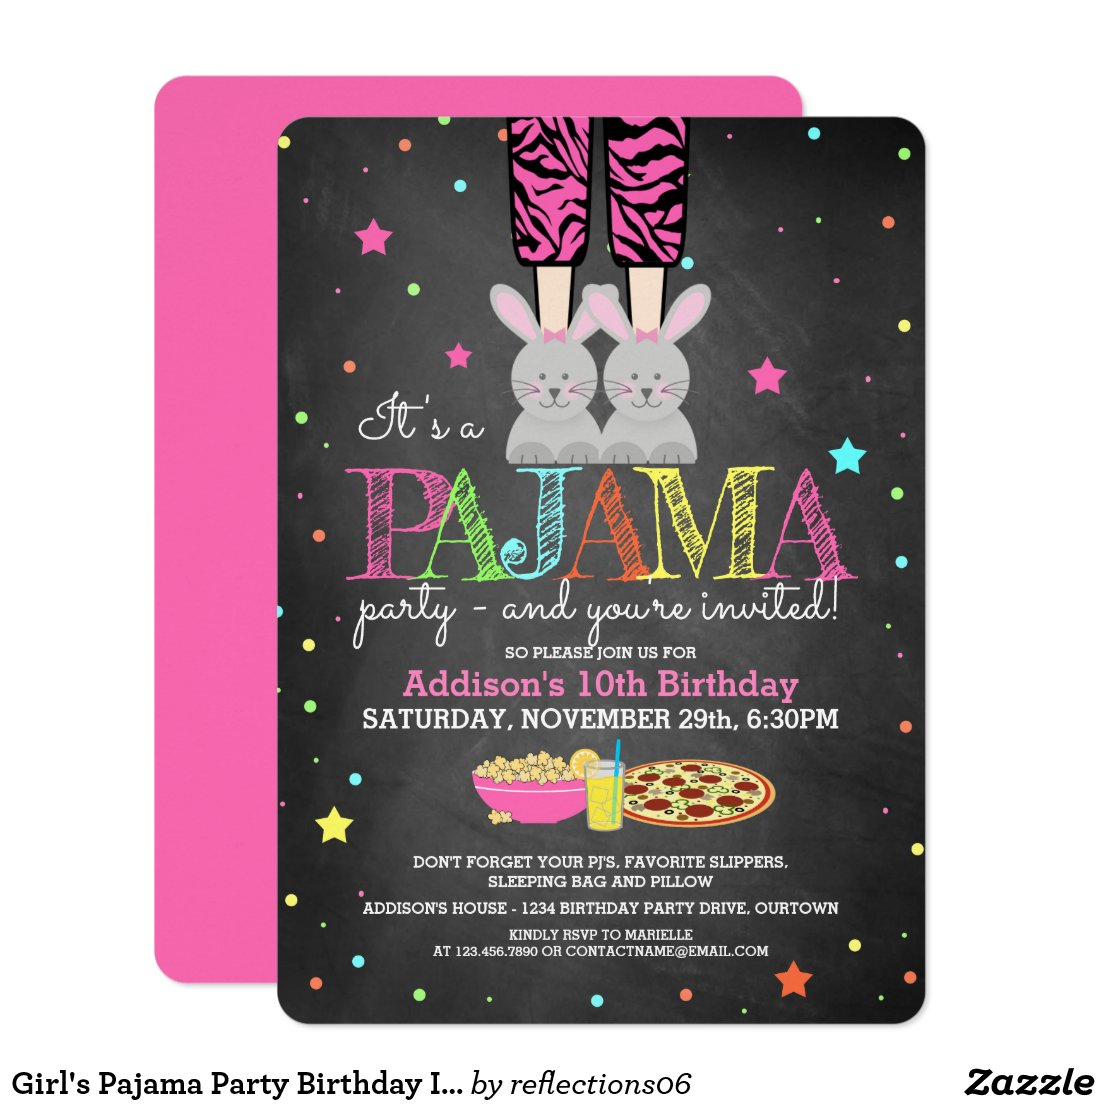 Girl's Pajama Party Birthday Invitations